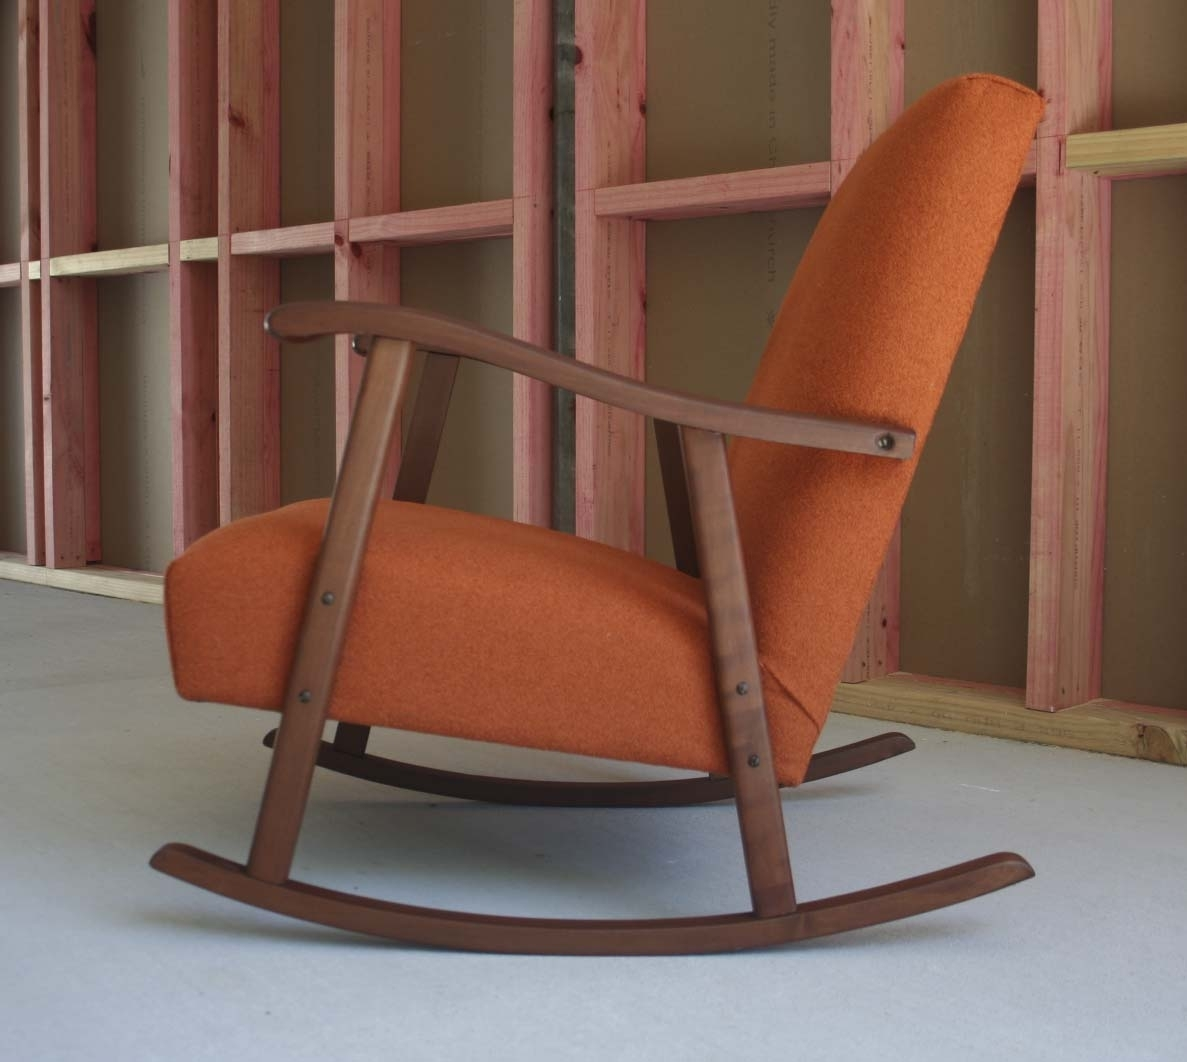 Inspiration about Retro Rocking Chairs | Zelfaanhetwerk Pertaining To Retro Rocking Chairs (#1 of 15)